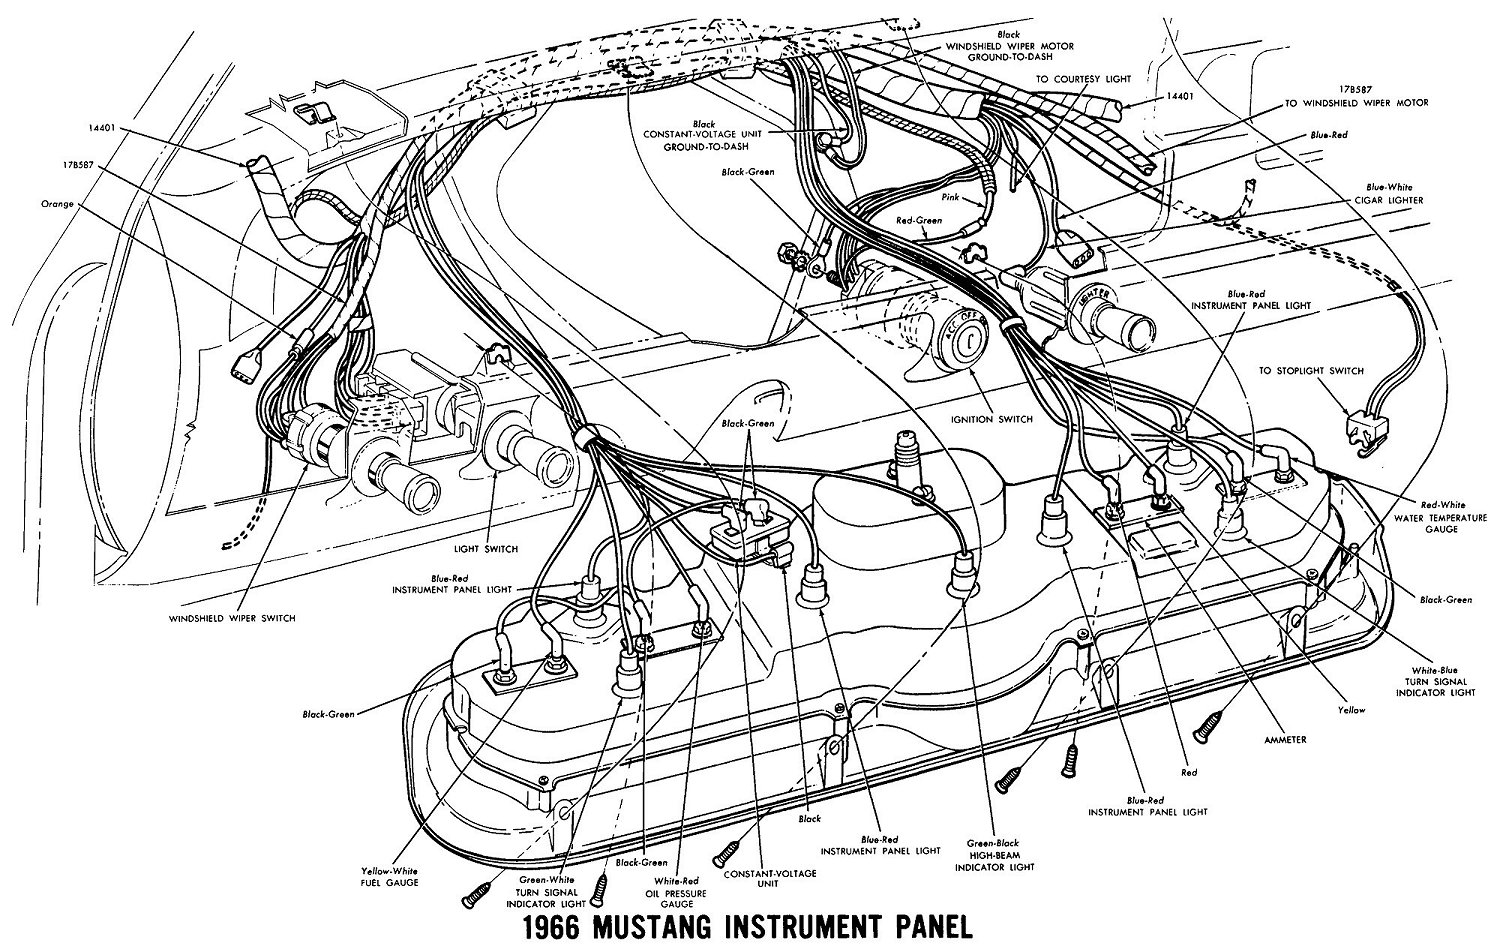 66instr 1966 mustang wiring diagrams average joe restoration 66 mustang engine wiring diagram free at soozxer.org